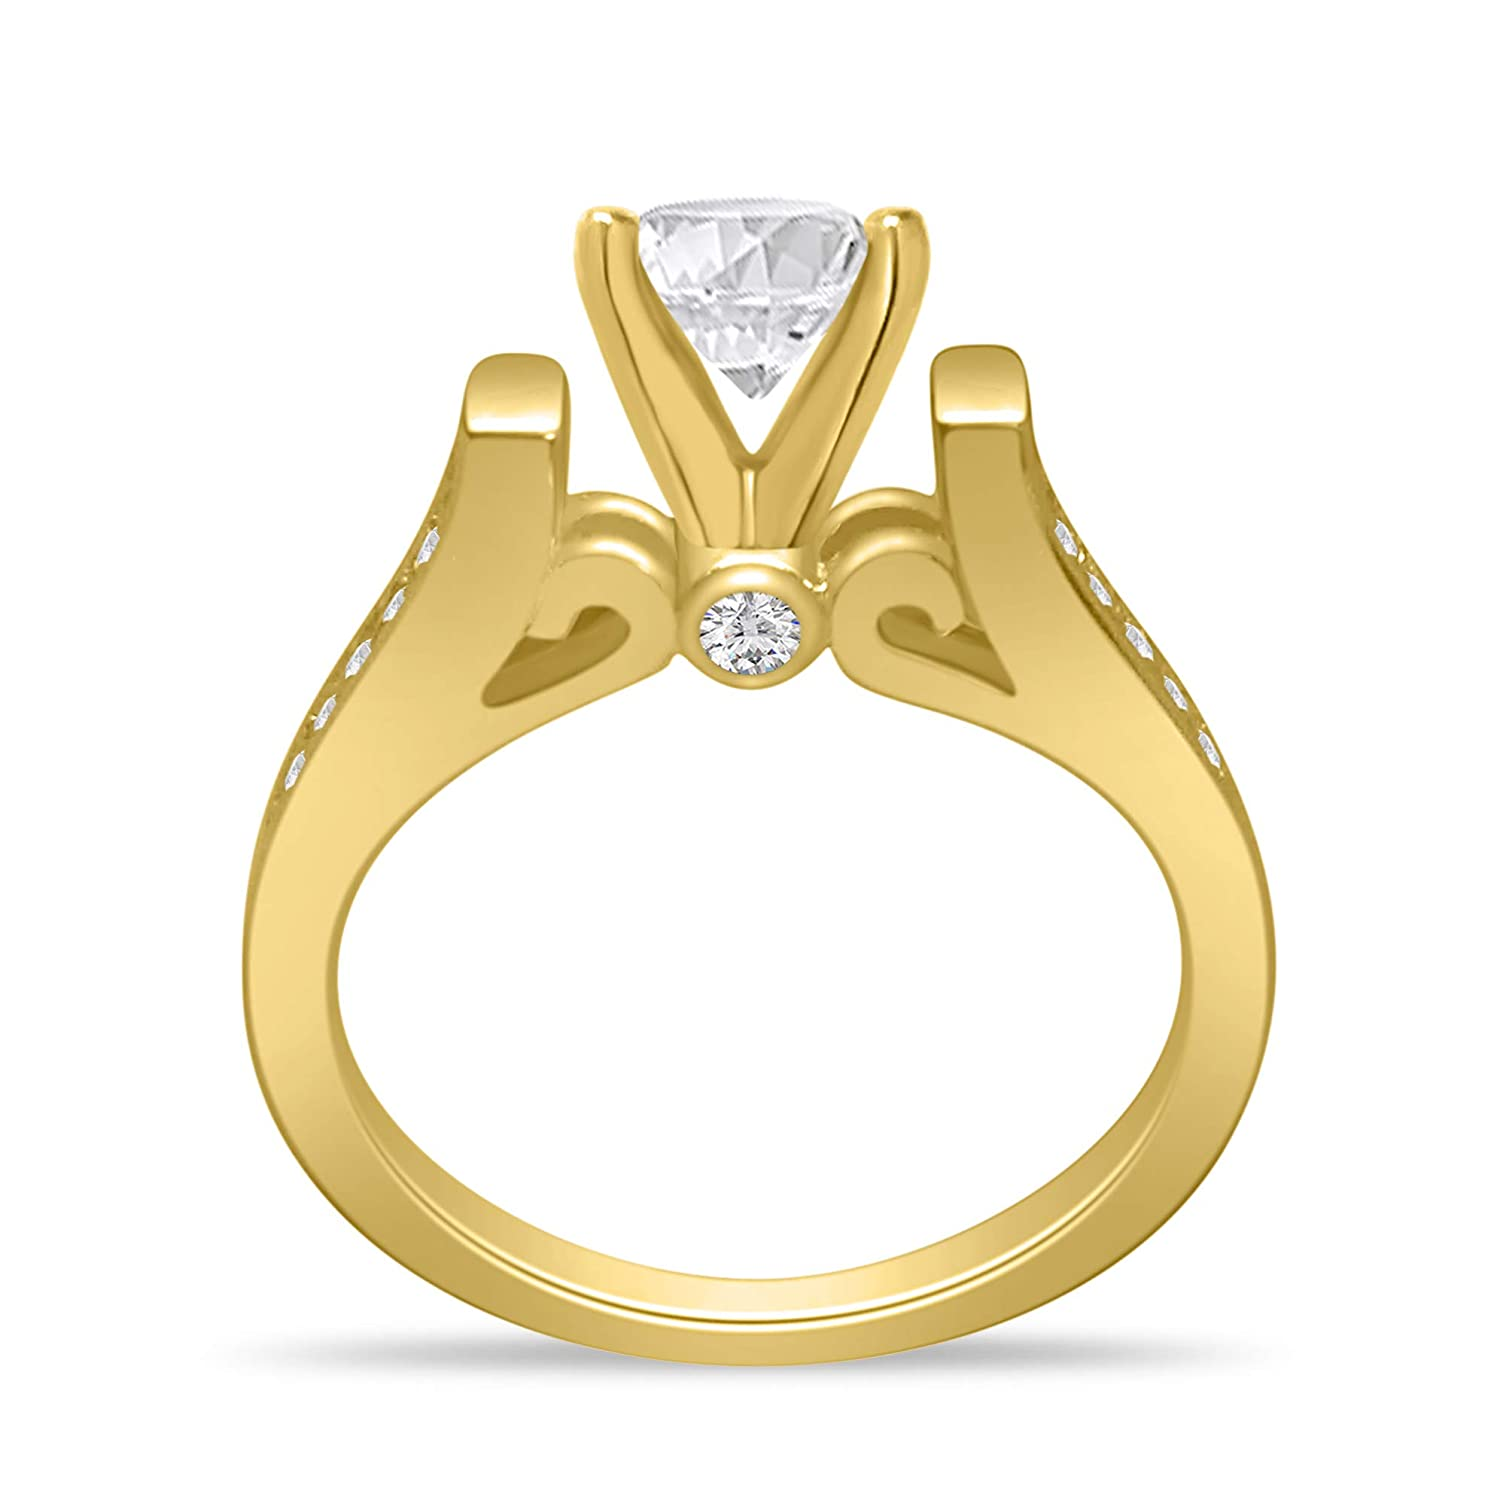 1.30 Cttw 7mm Round Simulated Diamond CZ Gemstone Birthstone Victorian Unique Cathedral Solitaire Promise Engagement Wedding Anniversary Ring 14k Yellow Gold Plated